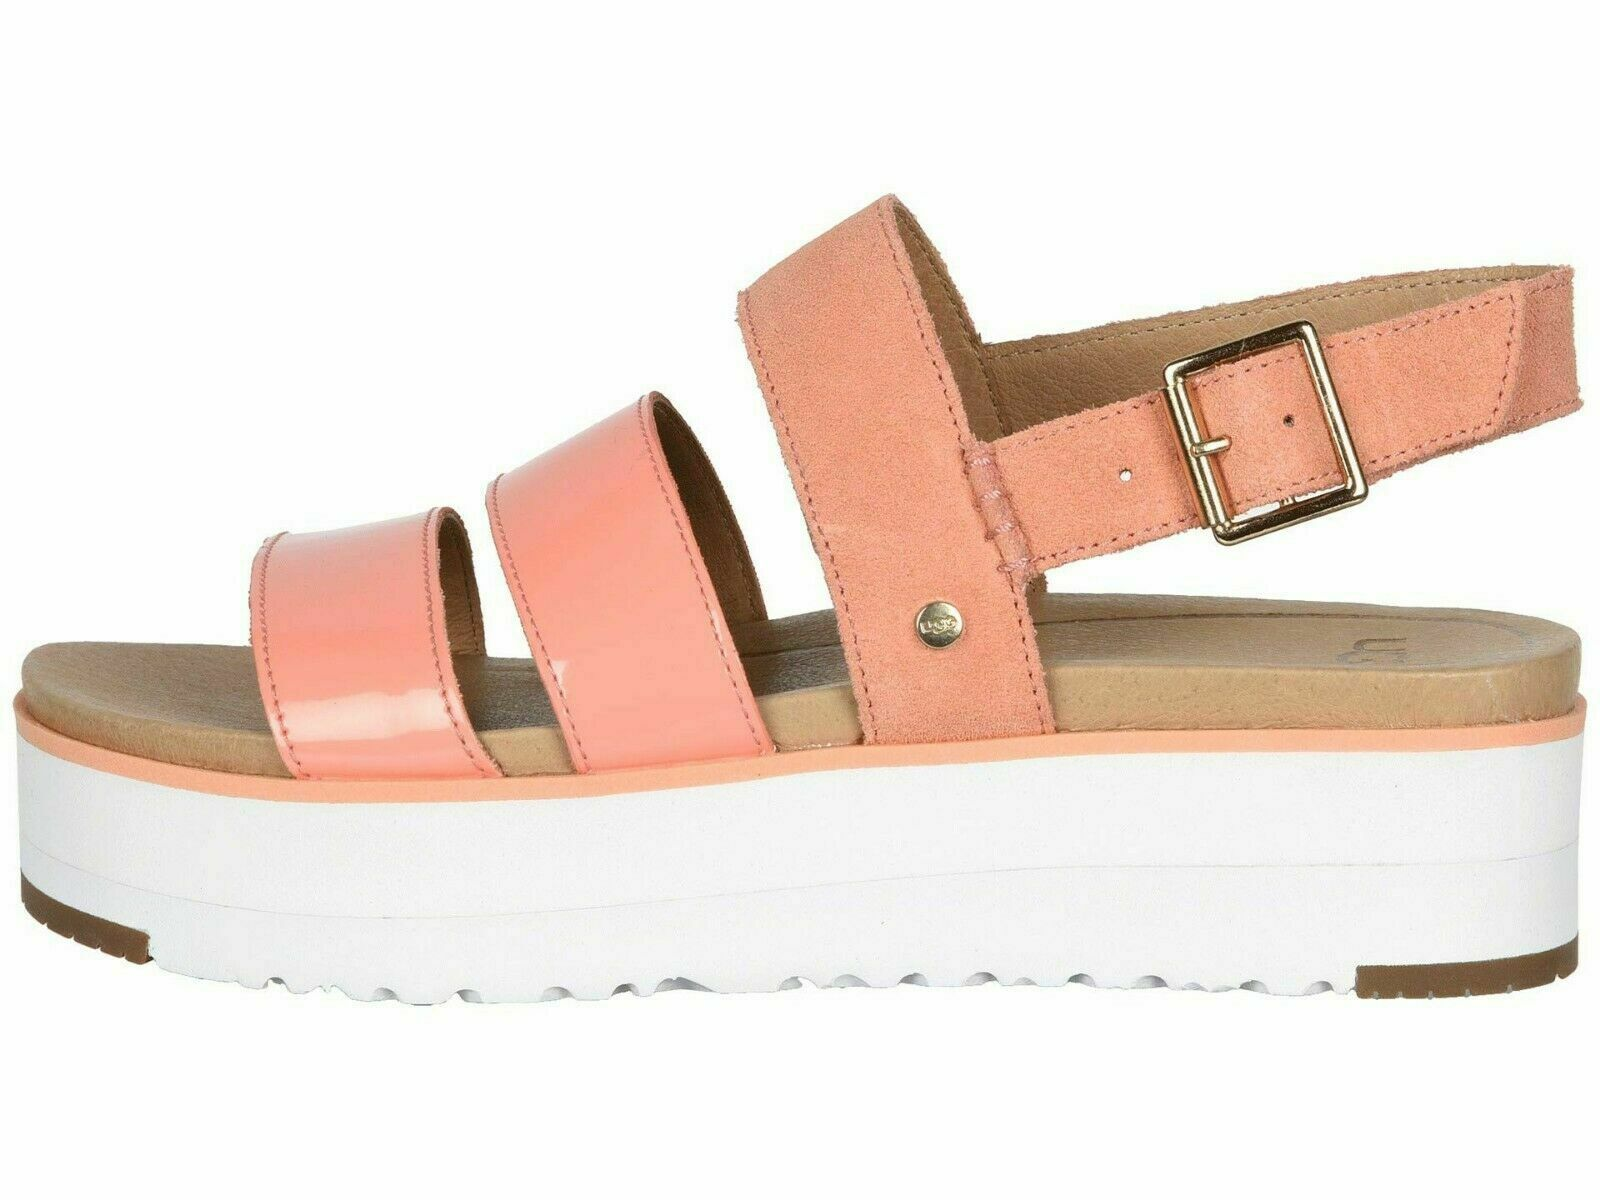 Primary image for UGG BRAELYNN Beverly Pink Women's Leather Platform Sandals 1099808